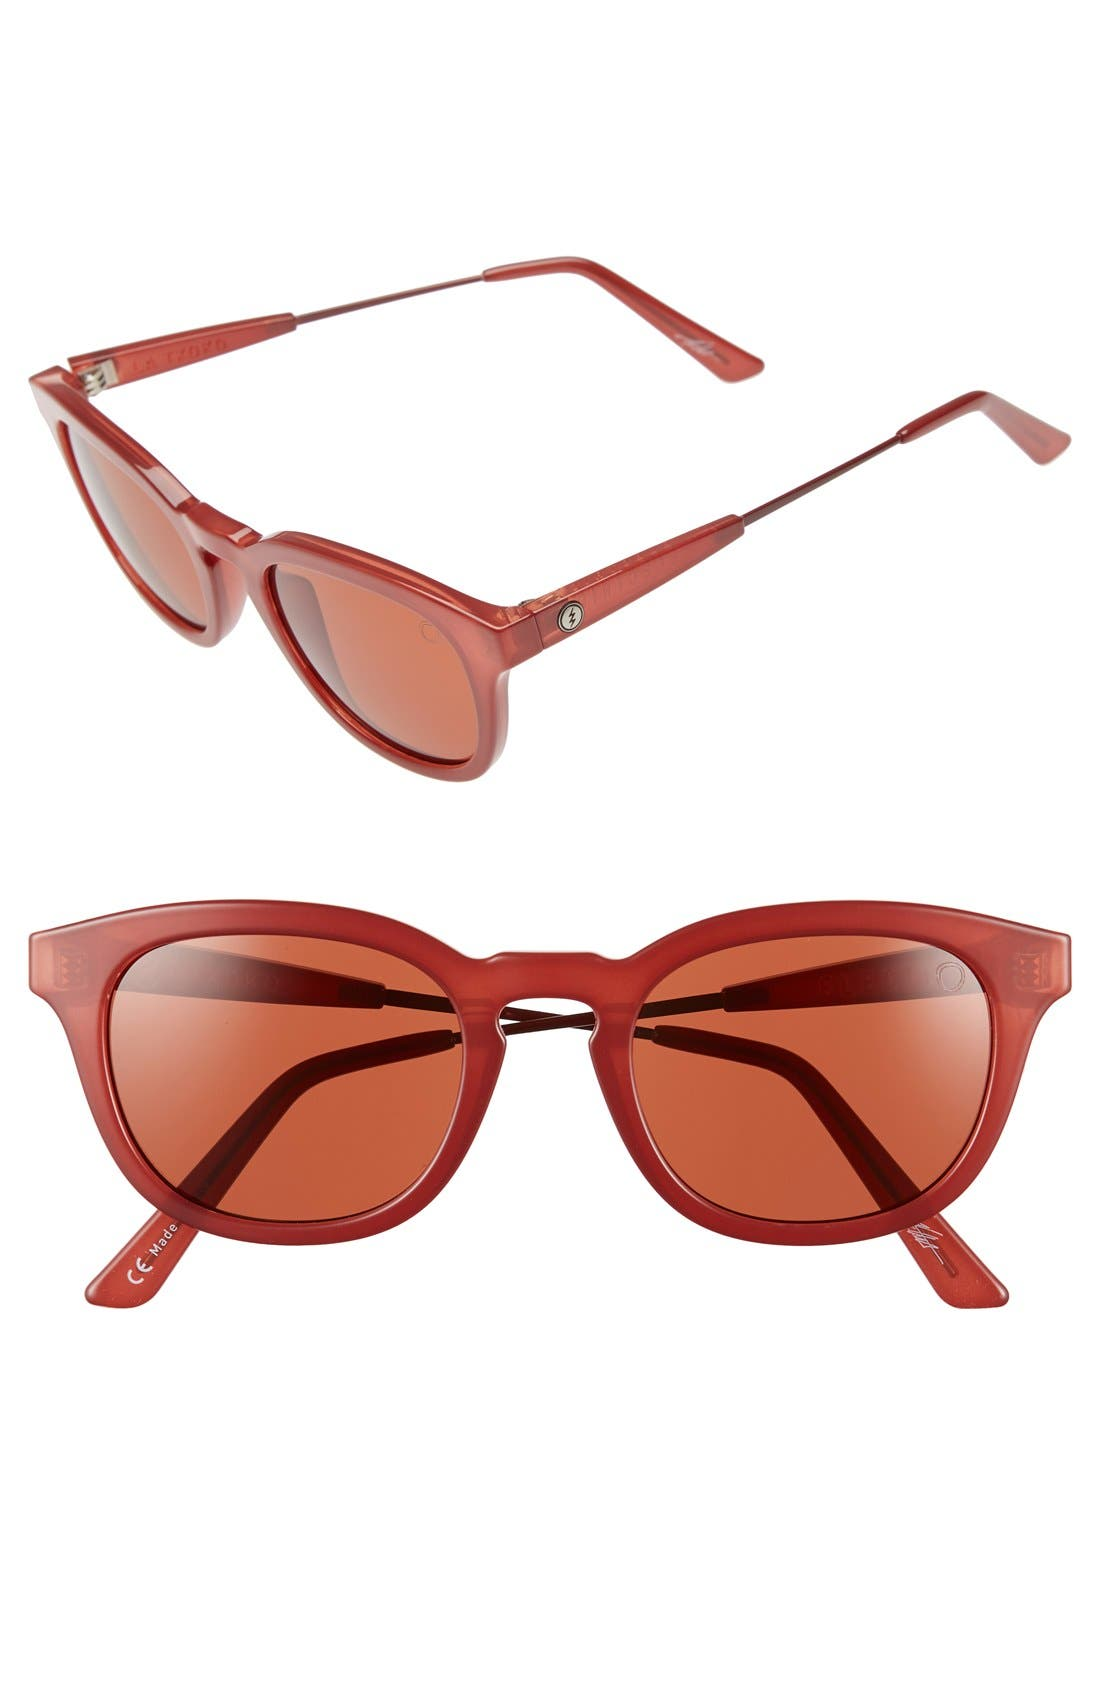 'La Txoko' 51mm Retro Sunglasses,                             Main thumbnail 1, color,                             600